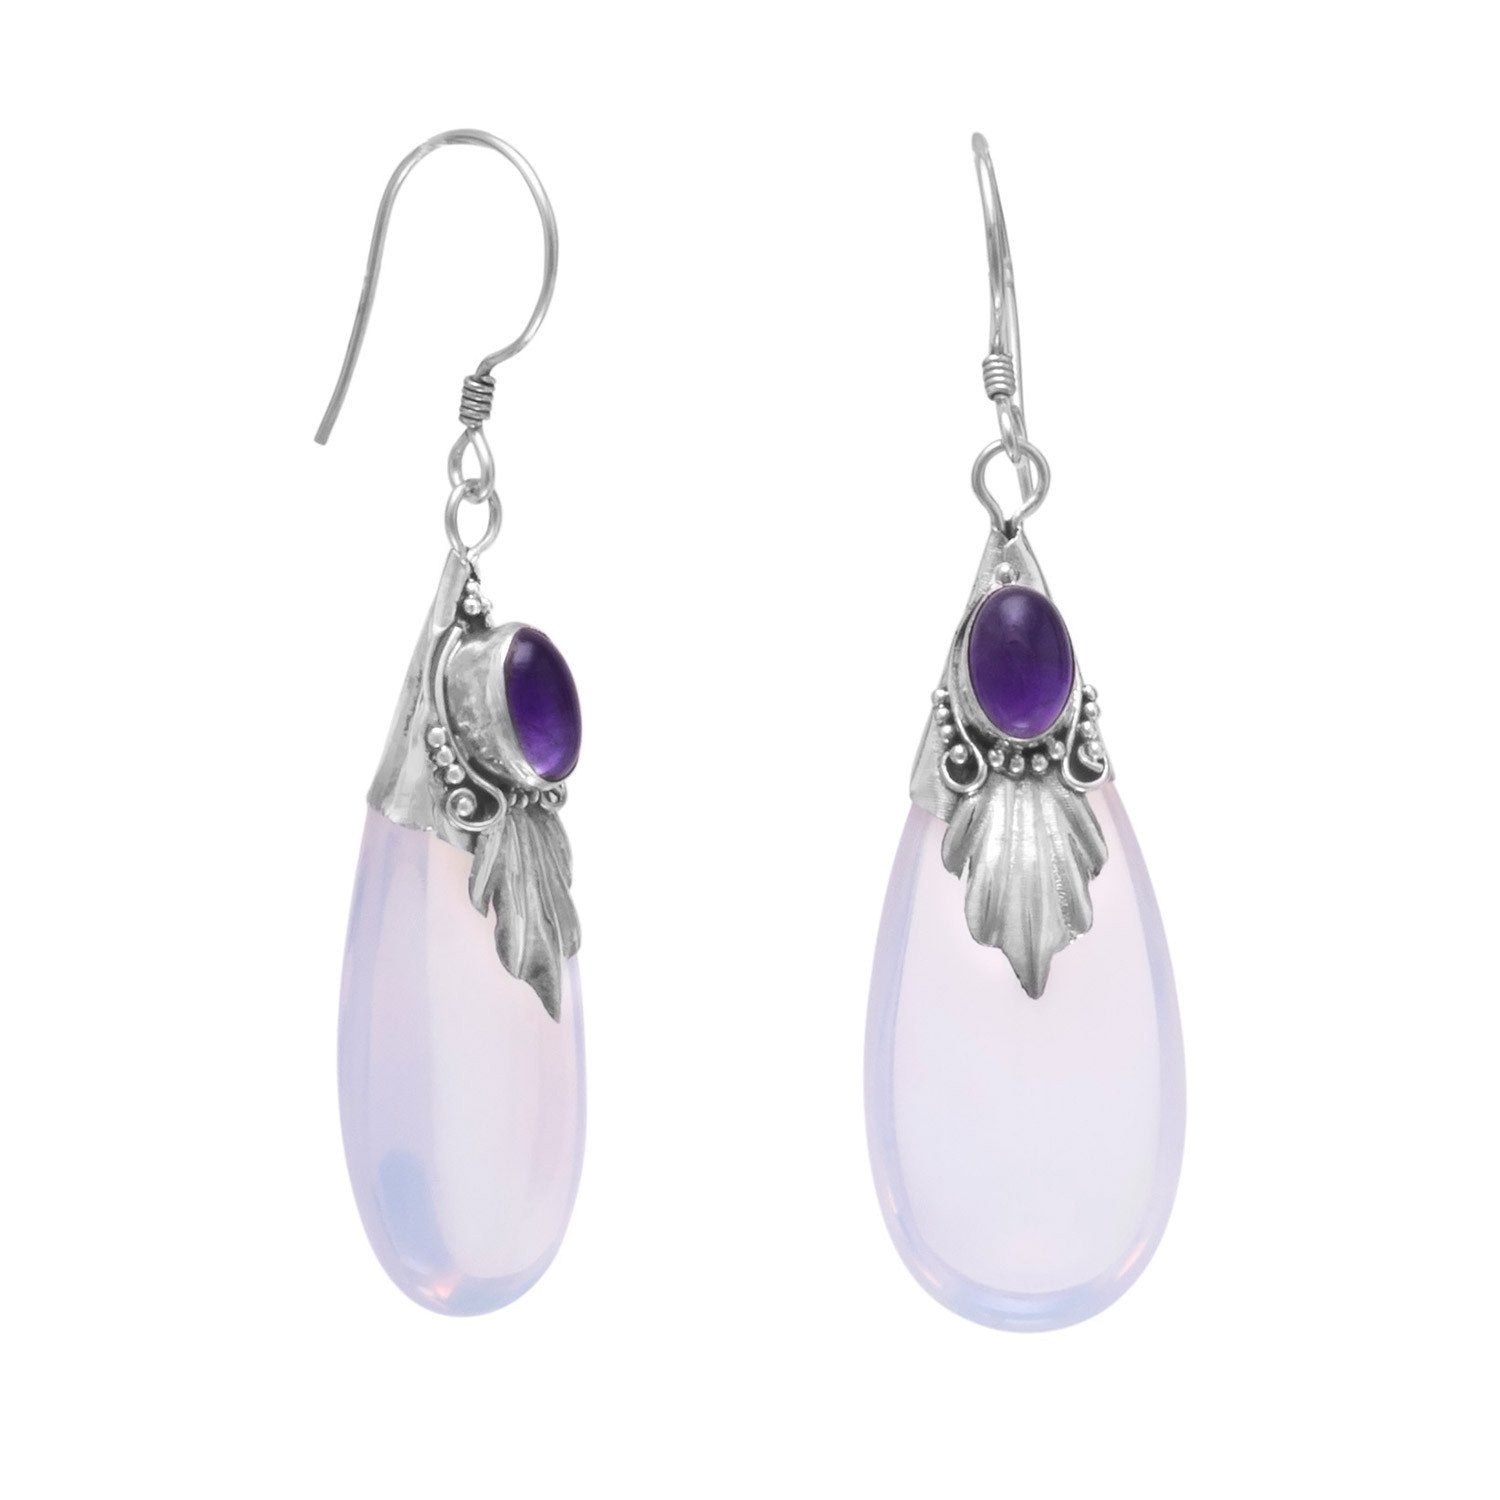 Glass and Amethyst Drop Earrings on French Wire - Rocky Mt. Outlet Inc - Shop & Save 24/7